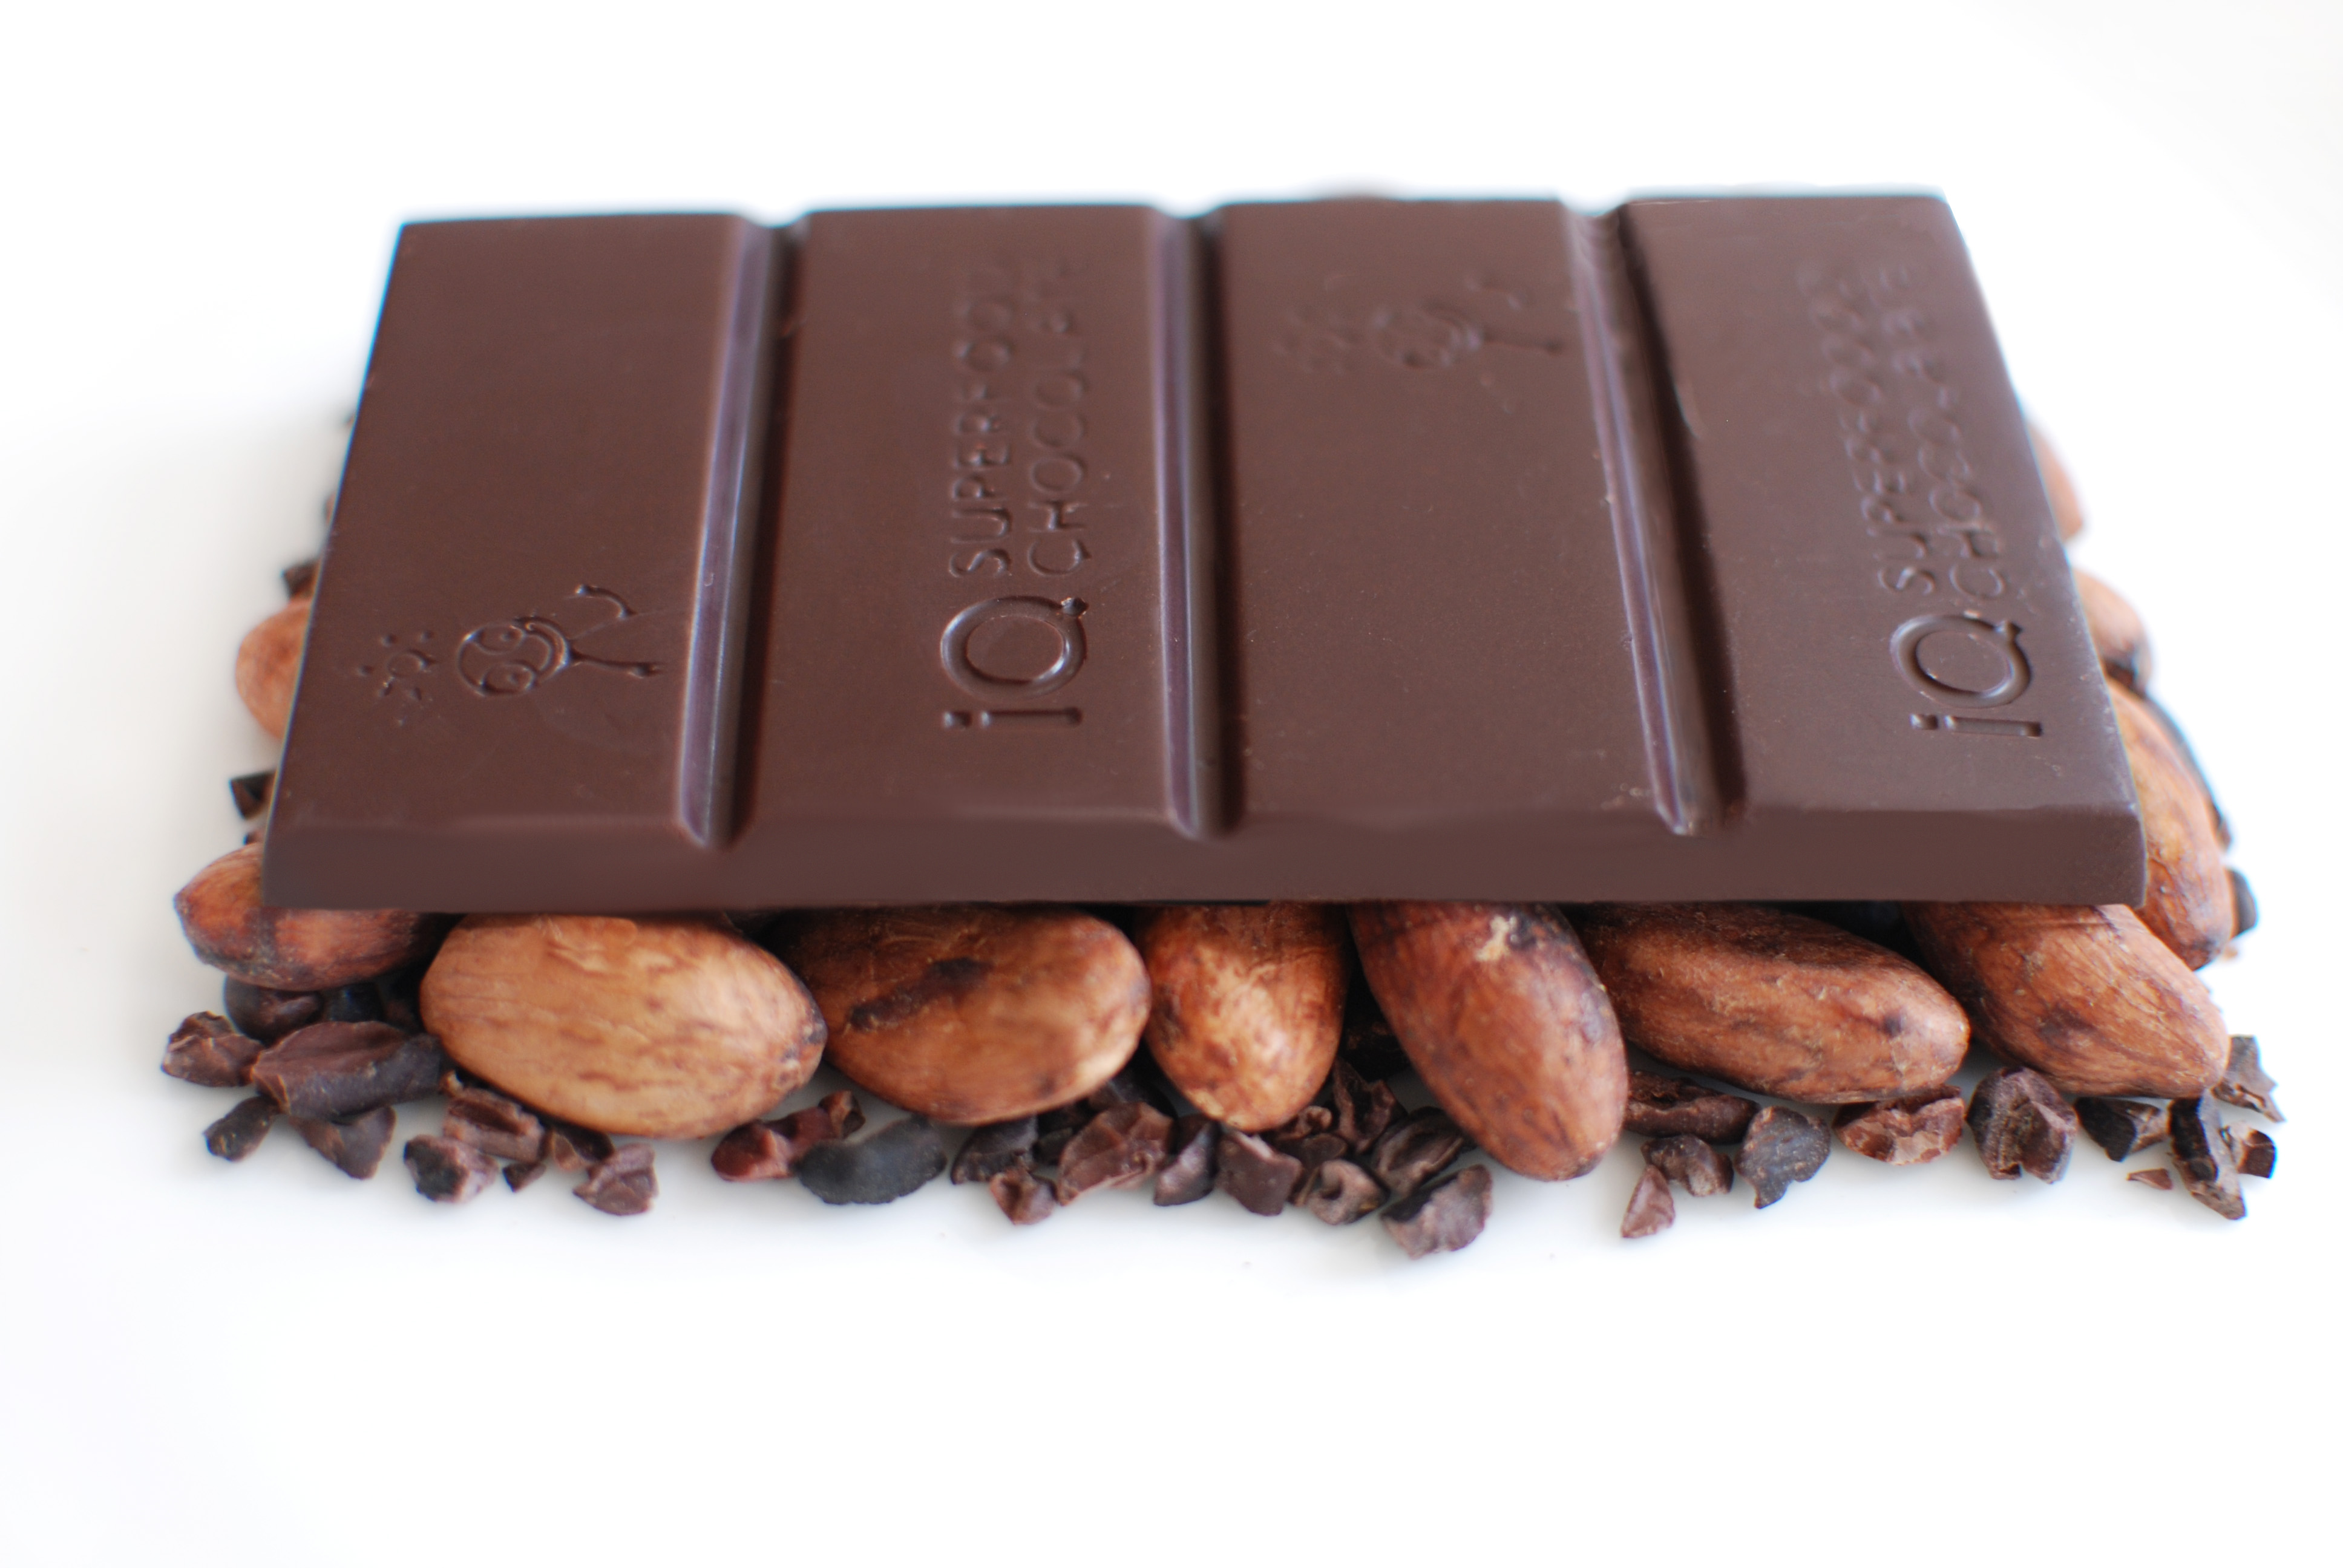 iQ Chocolate's bean to bar superfood chocolate